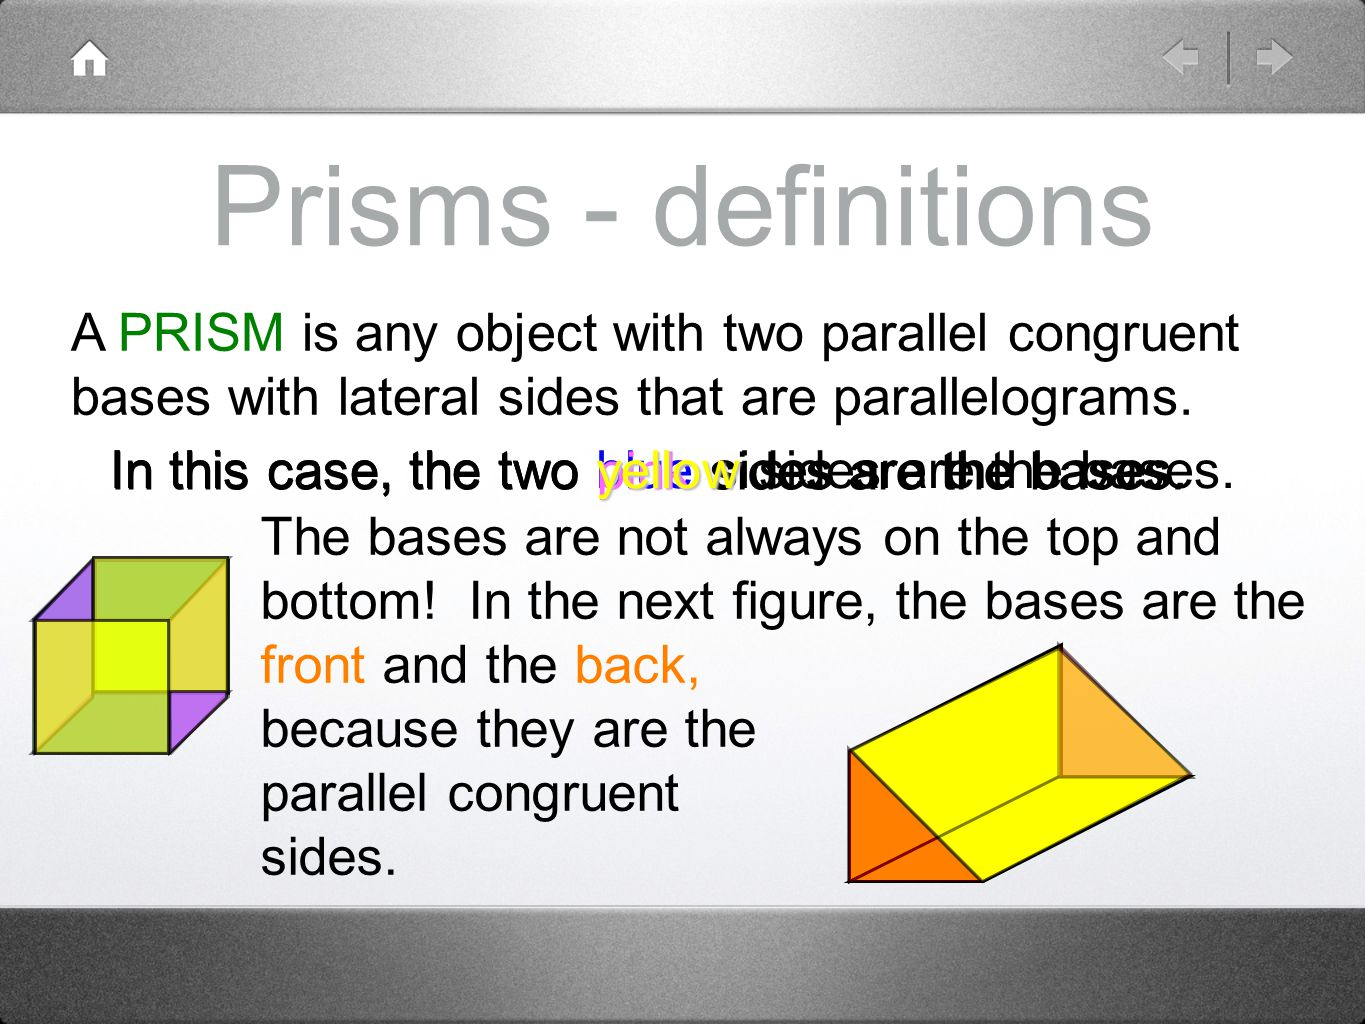 Prisms - definitions A PRISM is any object with two parallel congruent bases with lateral sides that are parallelograms.